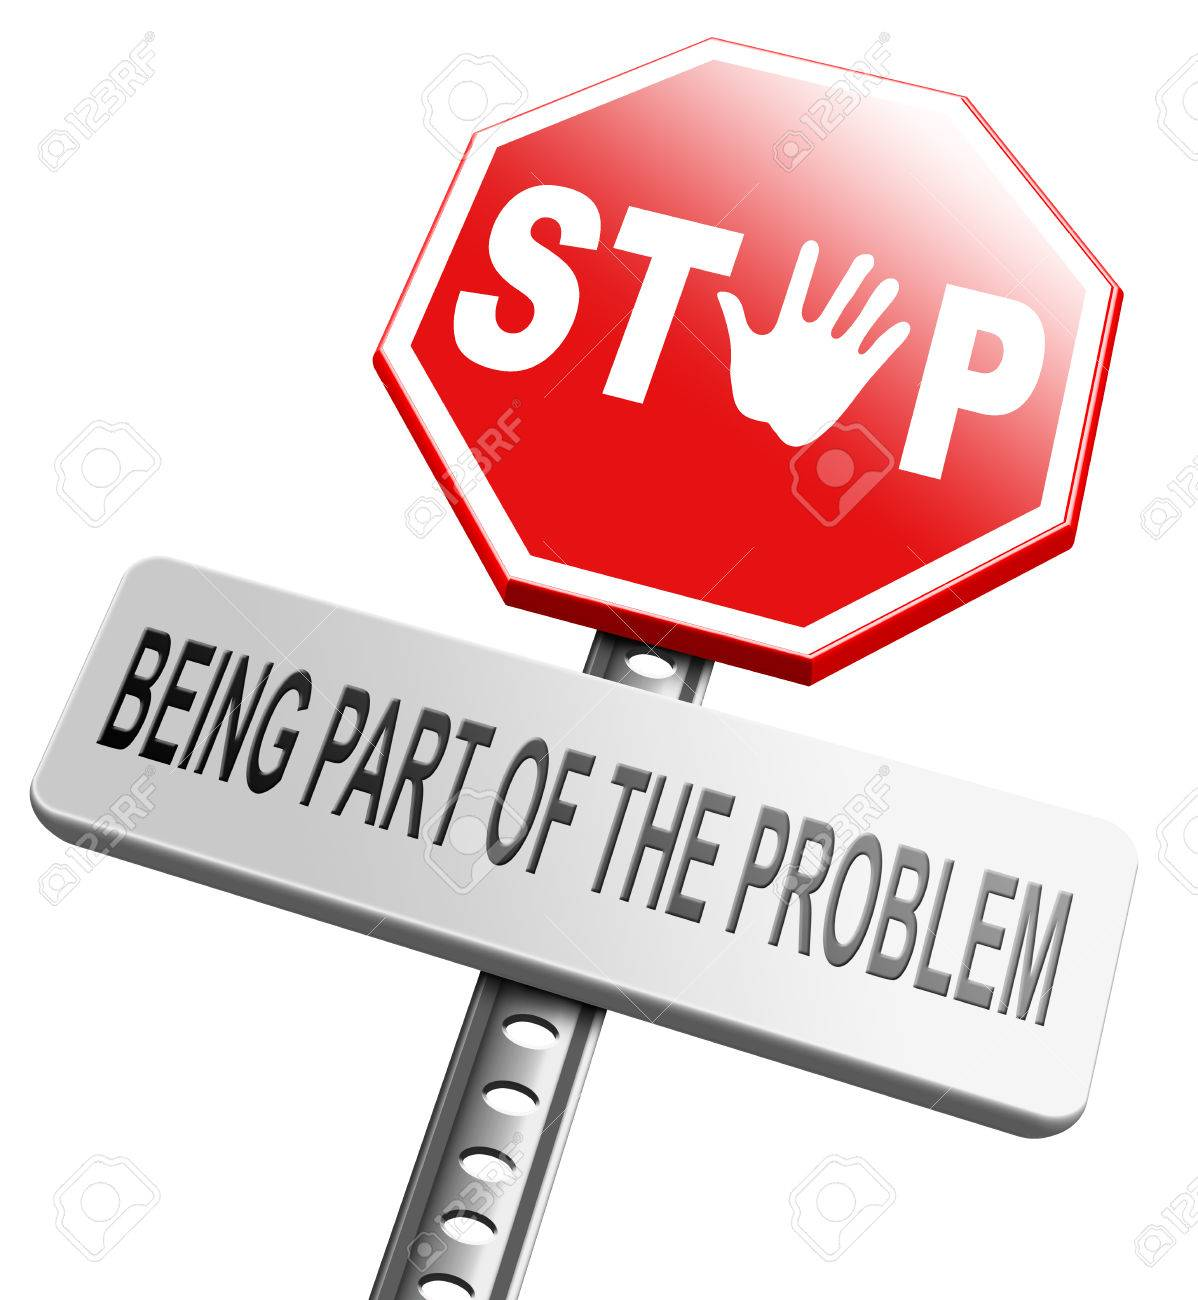 stop being part of the problem take responsibility work for a stock photo stop being part of the problem take responsibility work for a better world act now it is action time use alternative energy green